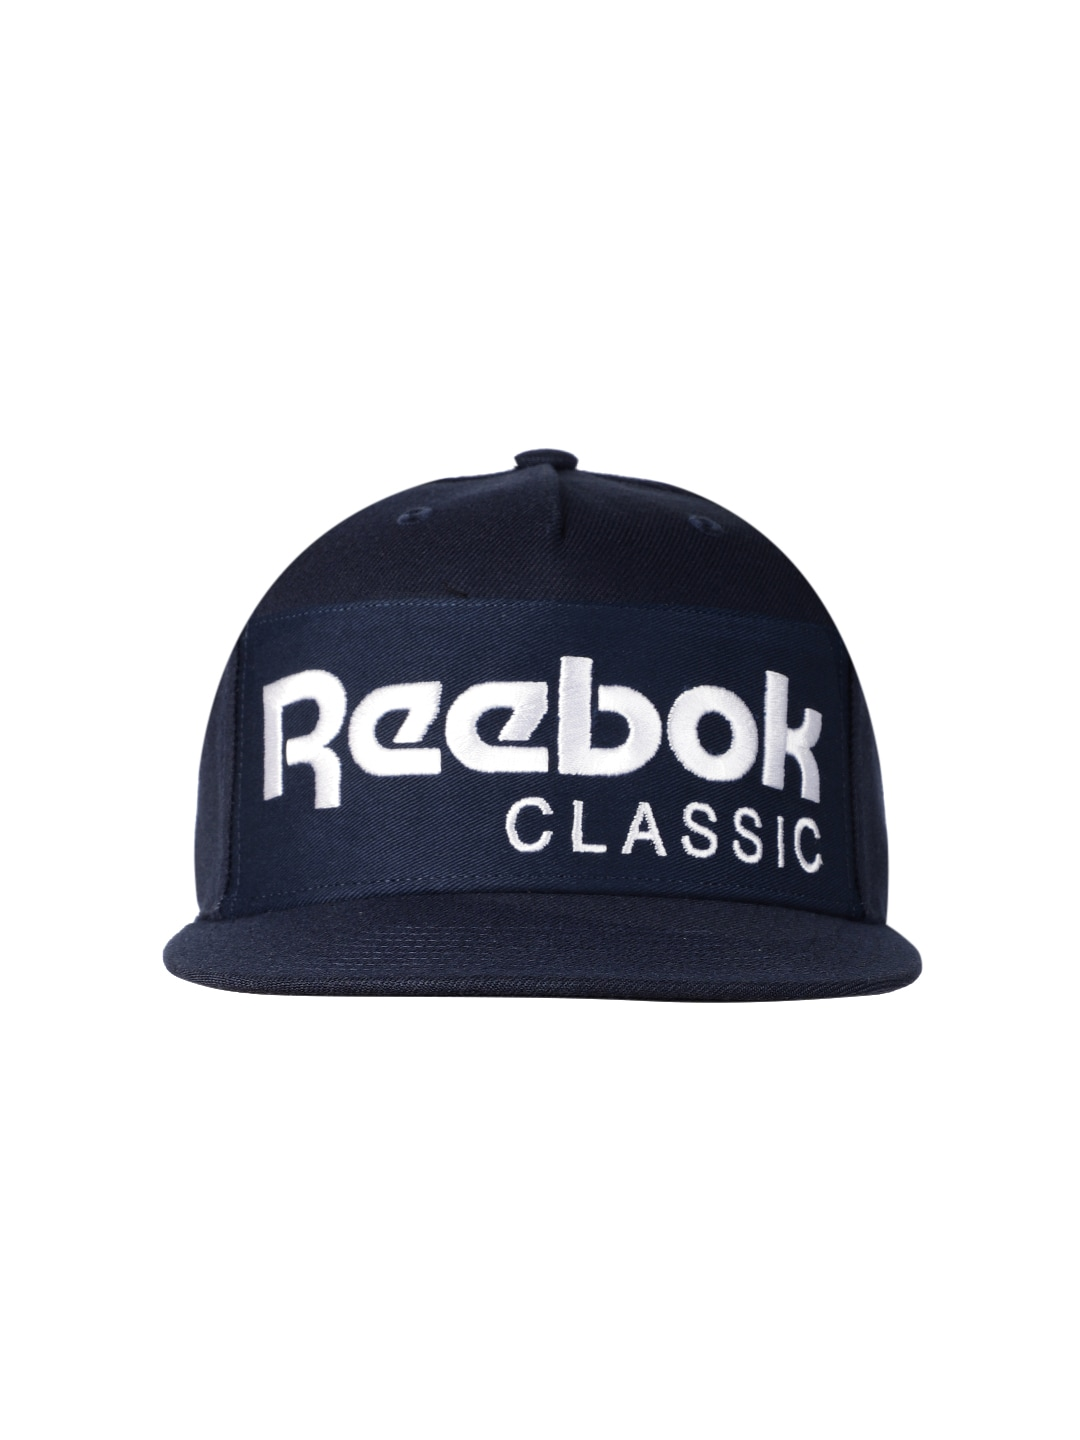 Reebok Cap Caps Backpacks Tops - Buy Reebok Cap Caps Backpacks Tops online  in India 361cfd6d60f